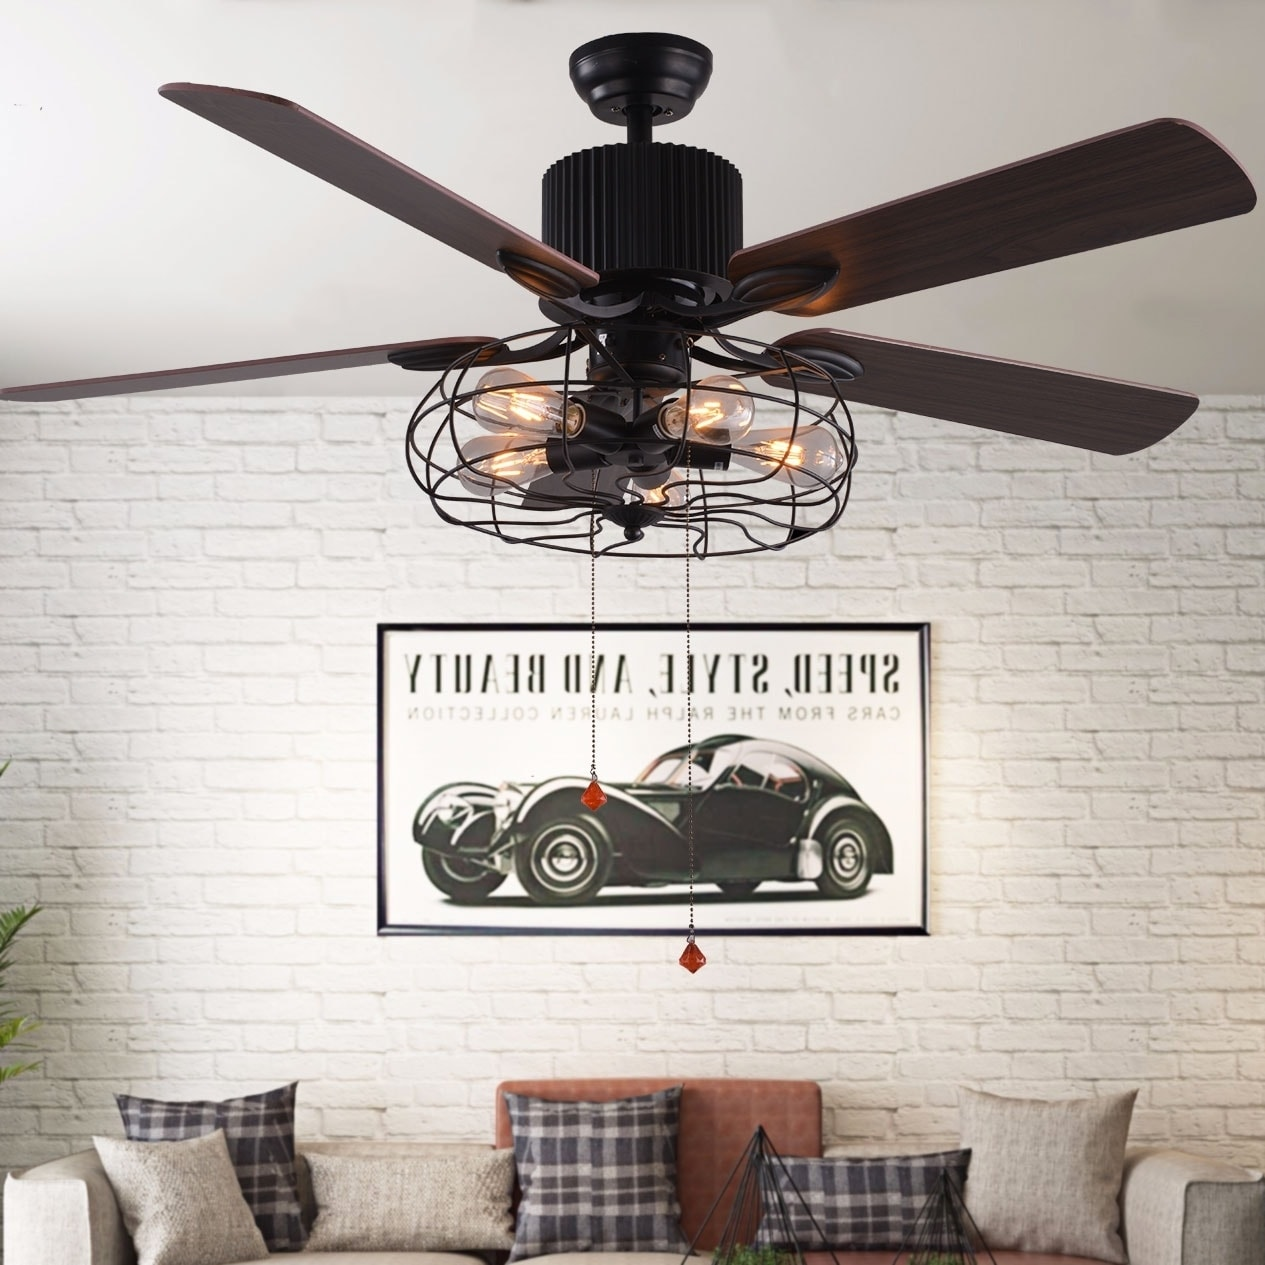 Black Industrial Ceiling Fan with Remote Control, 5 Wood Reversible Blades, Pull Chains (42 inches)